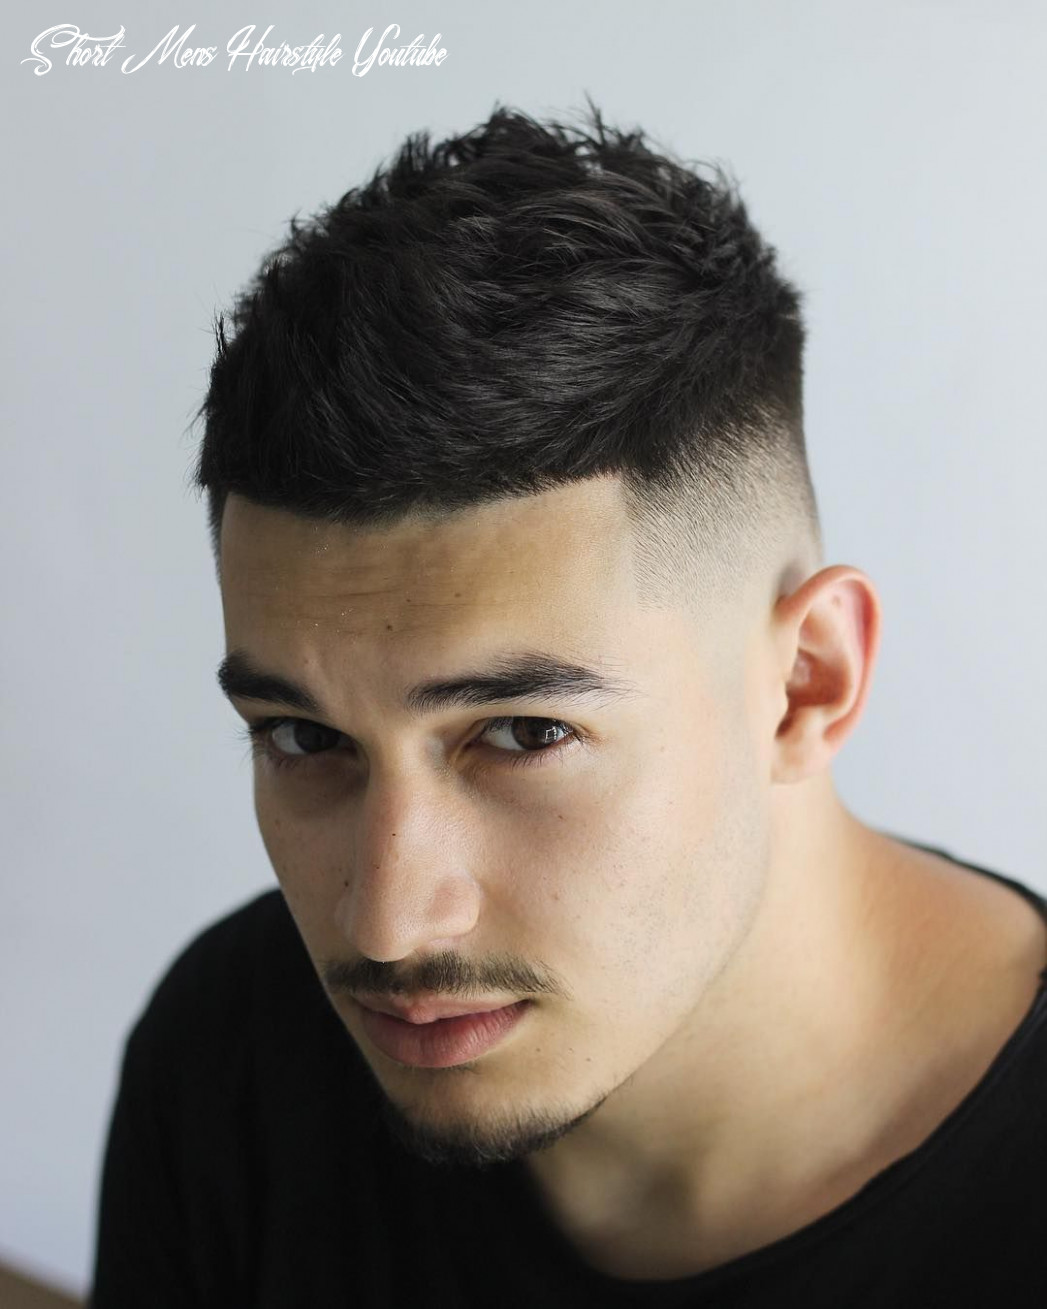 12 Best Short Haircuts For Men In 12 | Mens hairstyles short ...